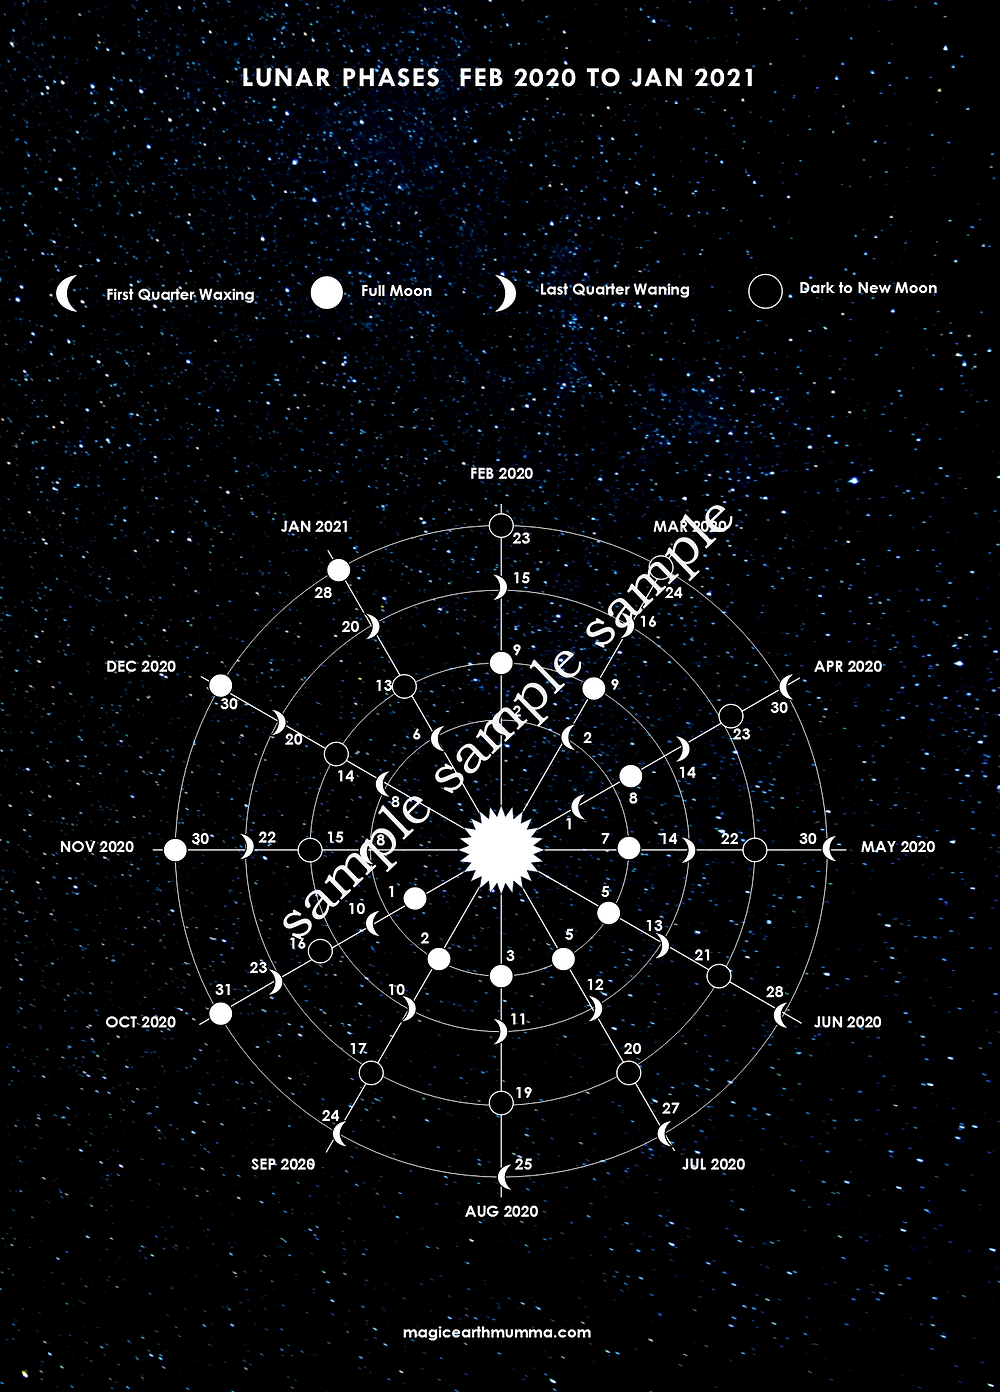 Lunar Phase Wall Chart for 2020 Feng Shui Year